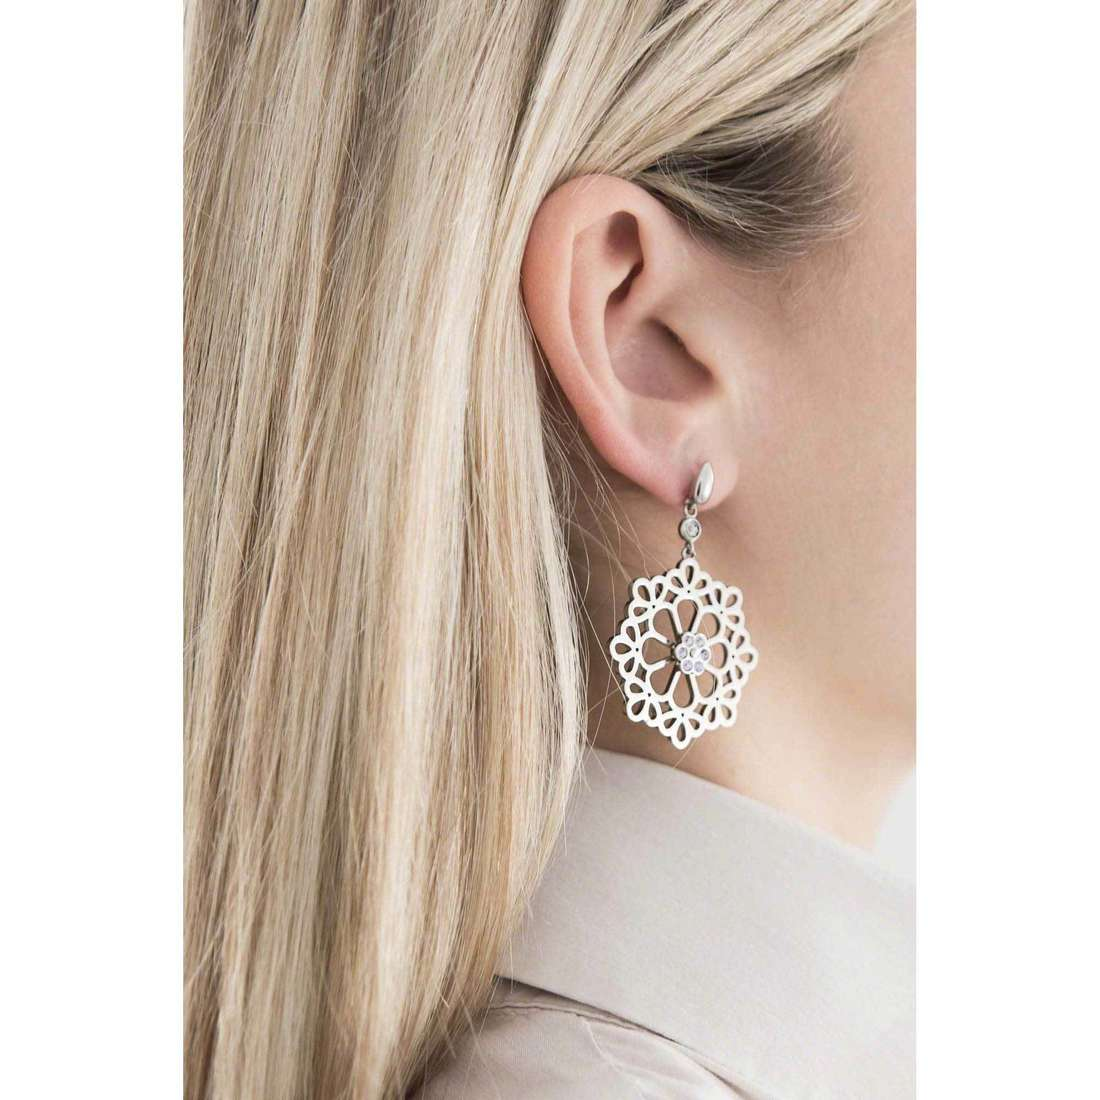 Morellato earrings Kaleido woman SADY08 indosso